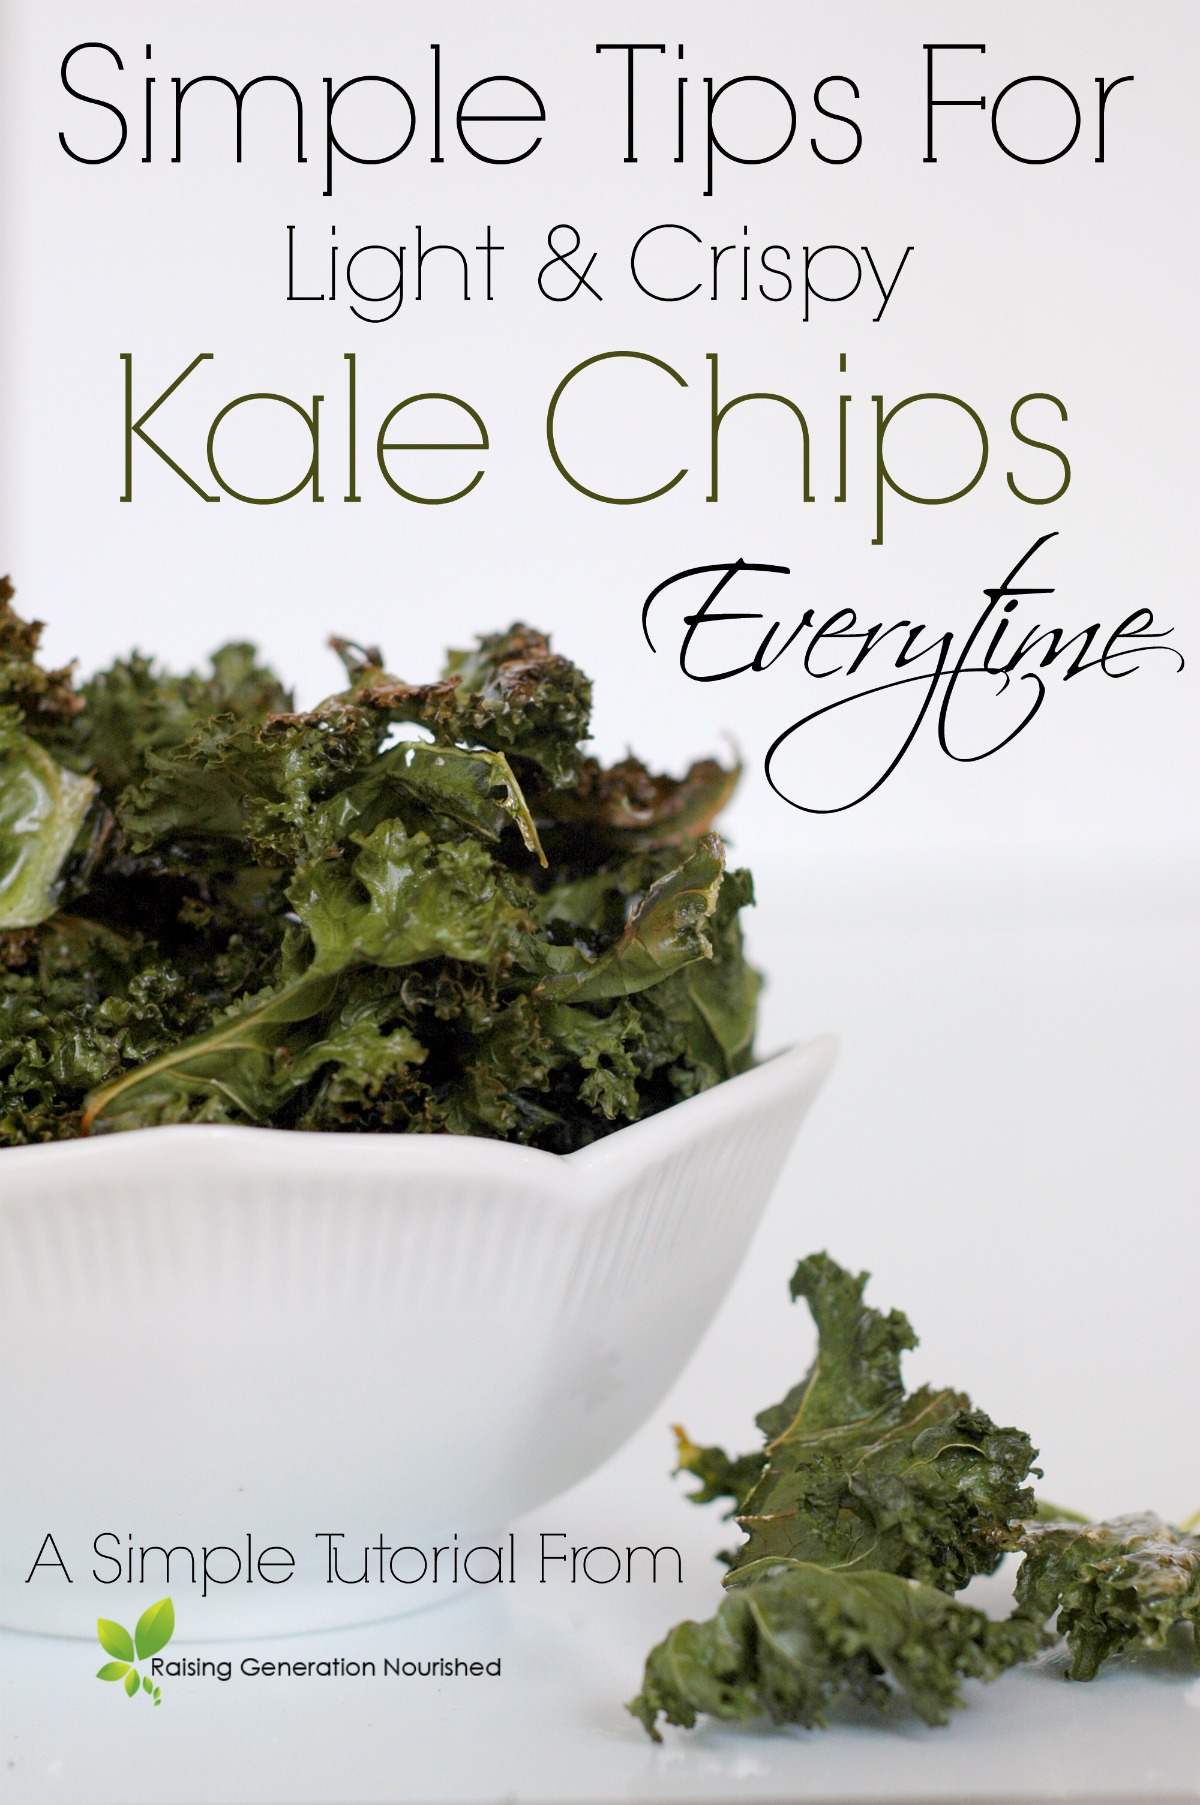 Simple Tips For Light & Crispy Kale Chips Every Time!